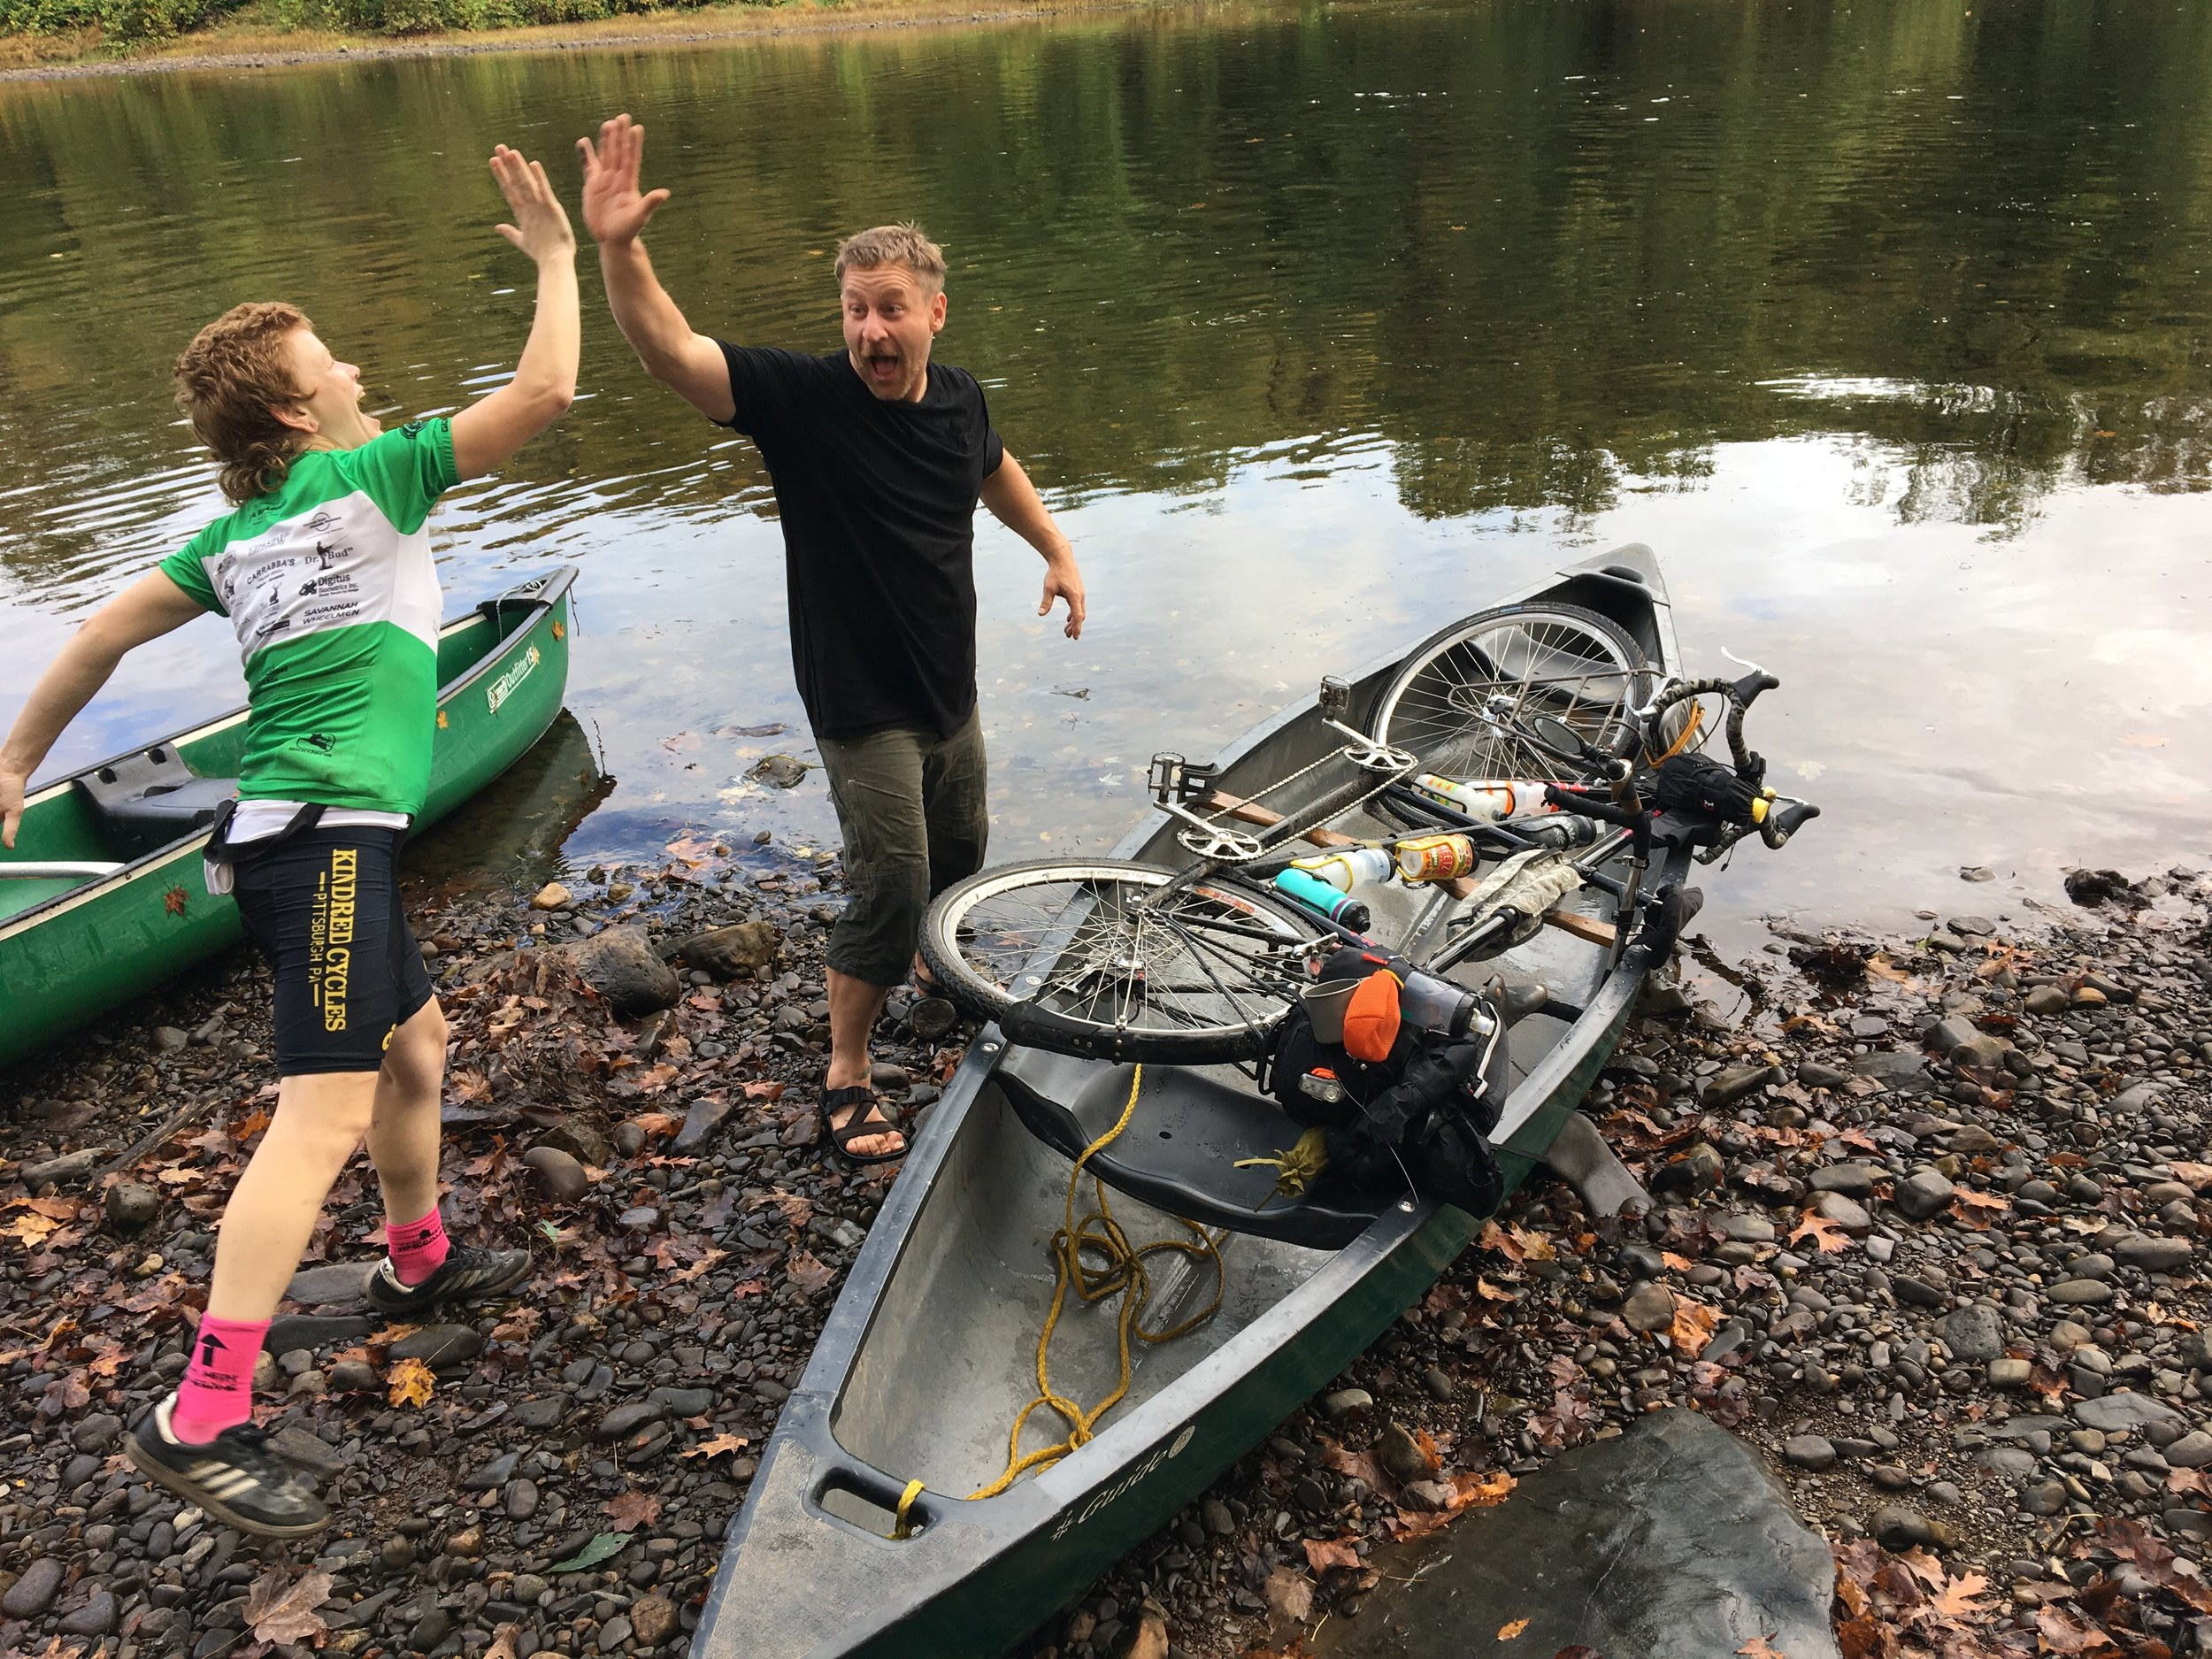 Katharine and Paul stoked on their successful canoe tandem loading!